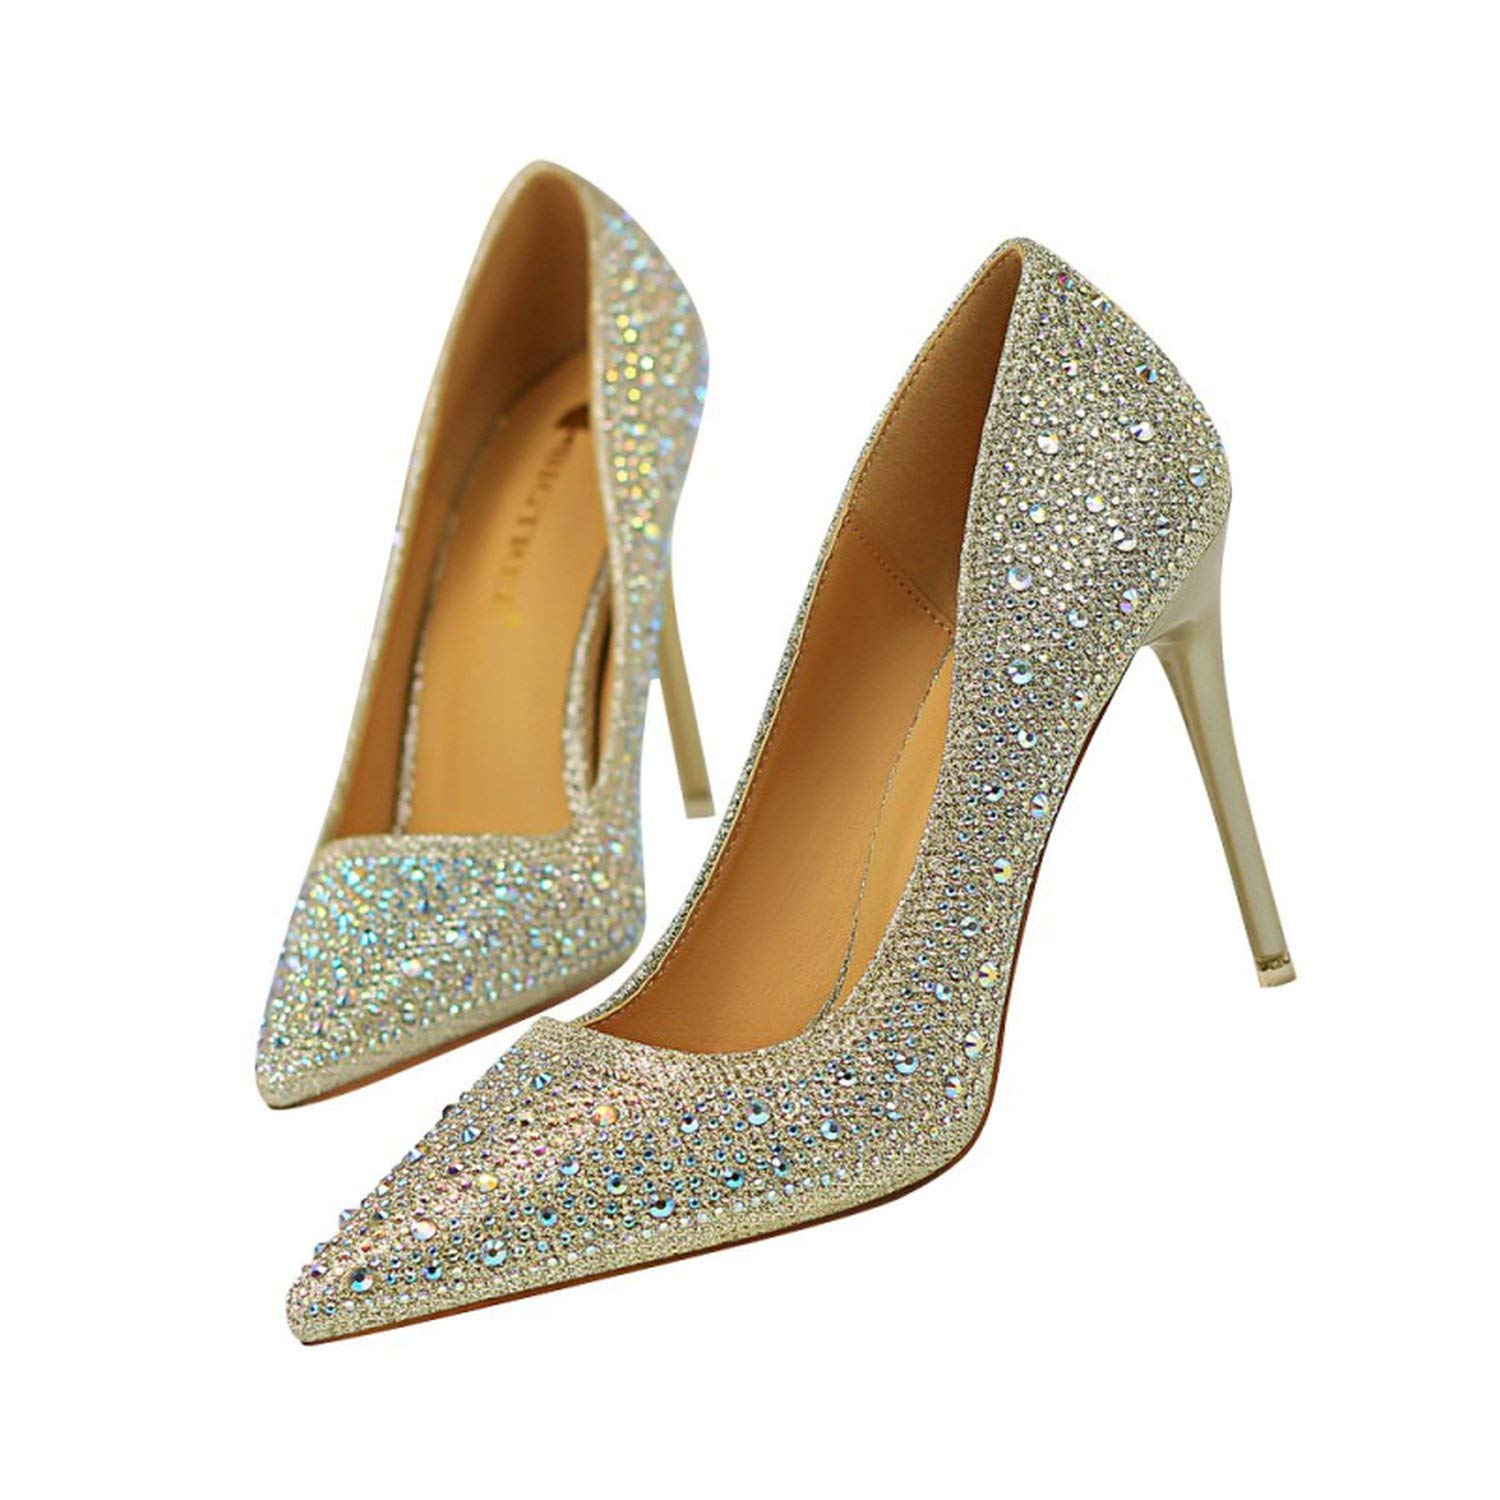 gold coolemon 2019 Spring Wedding Party Women Pumps shoes Woman High Heels Female Crystal Bling Nightclub Stilettos Pointed Toe shoes